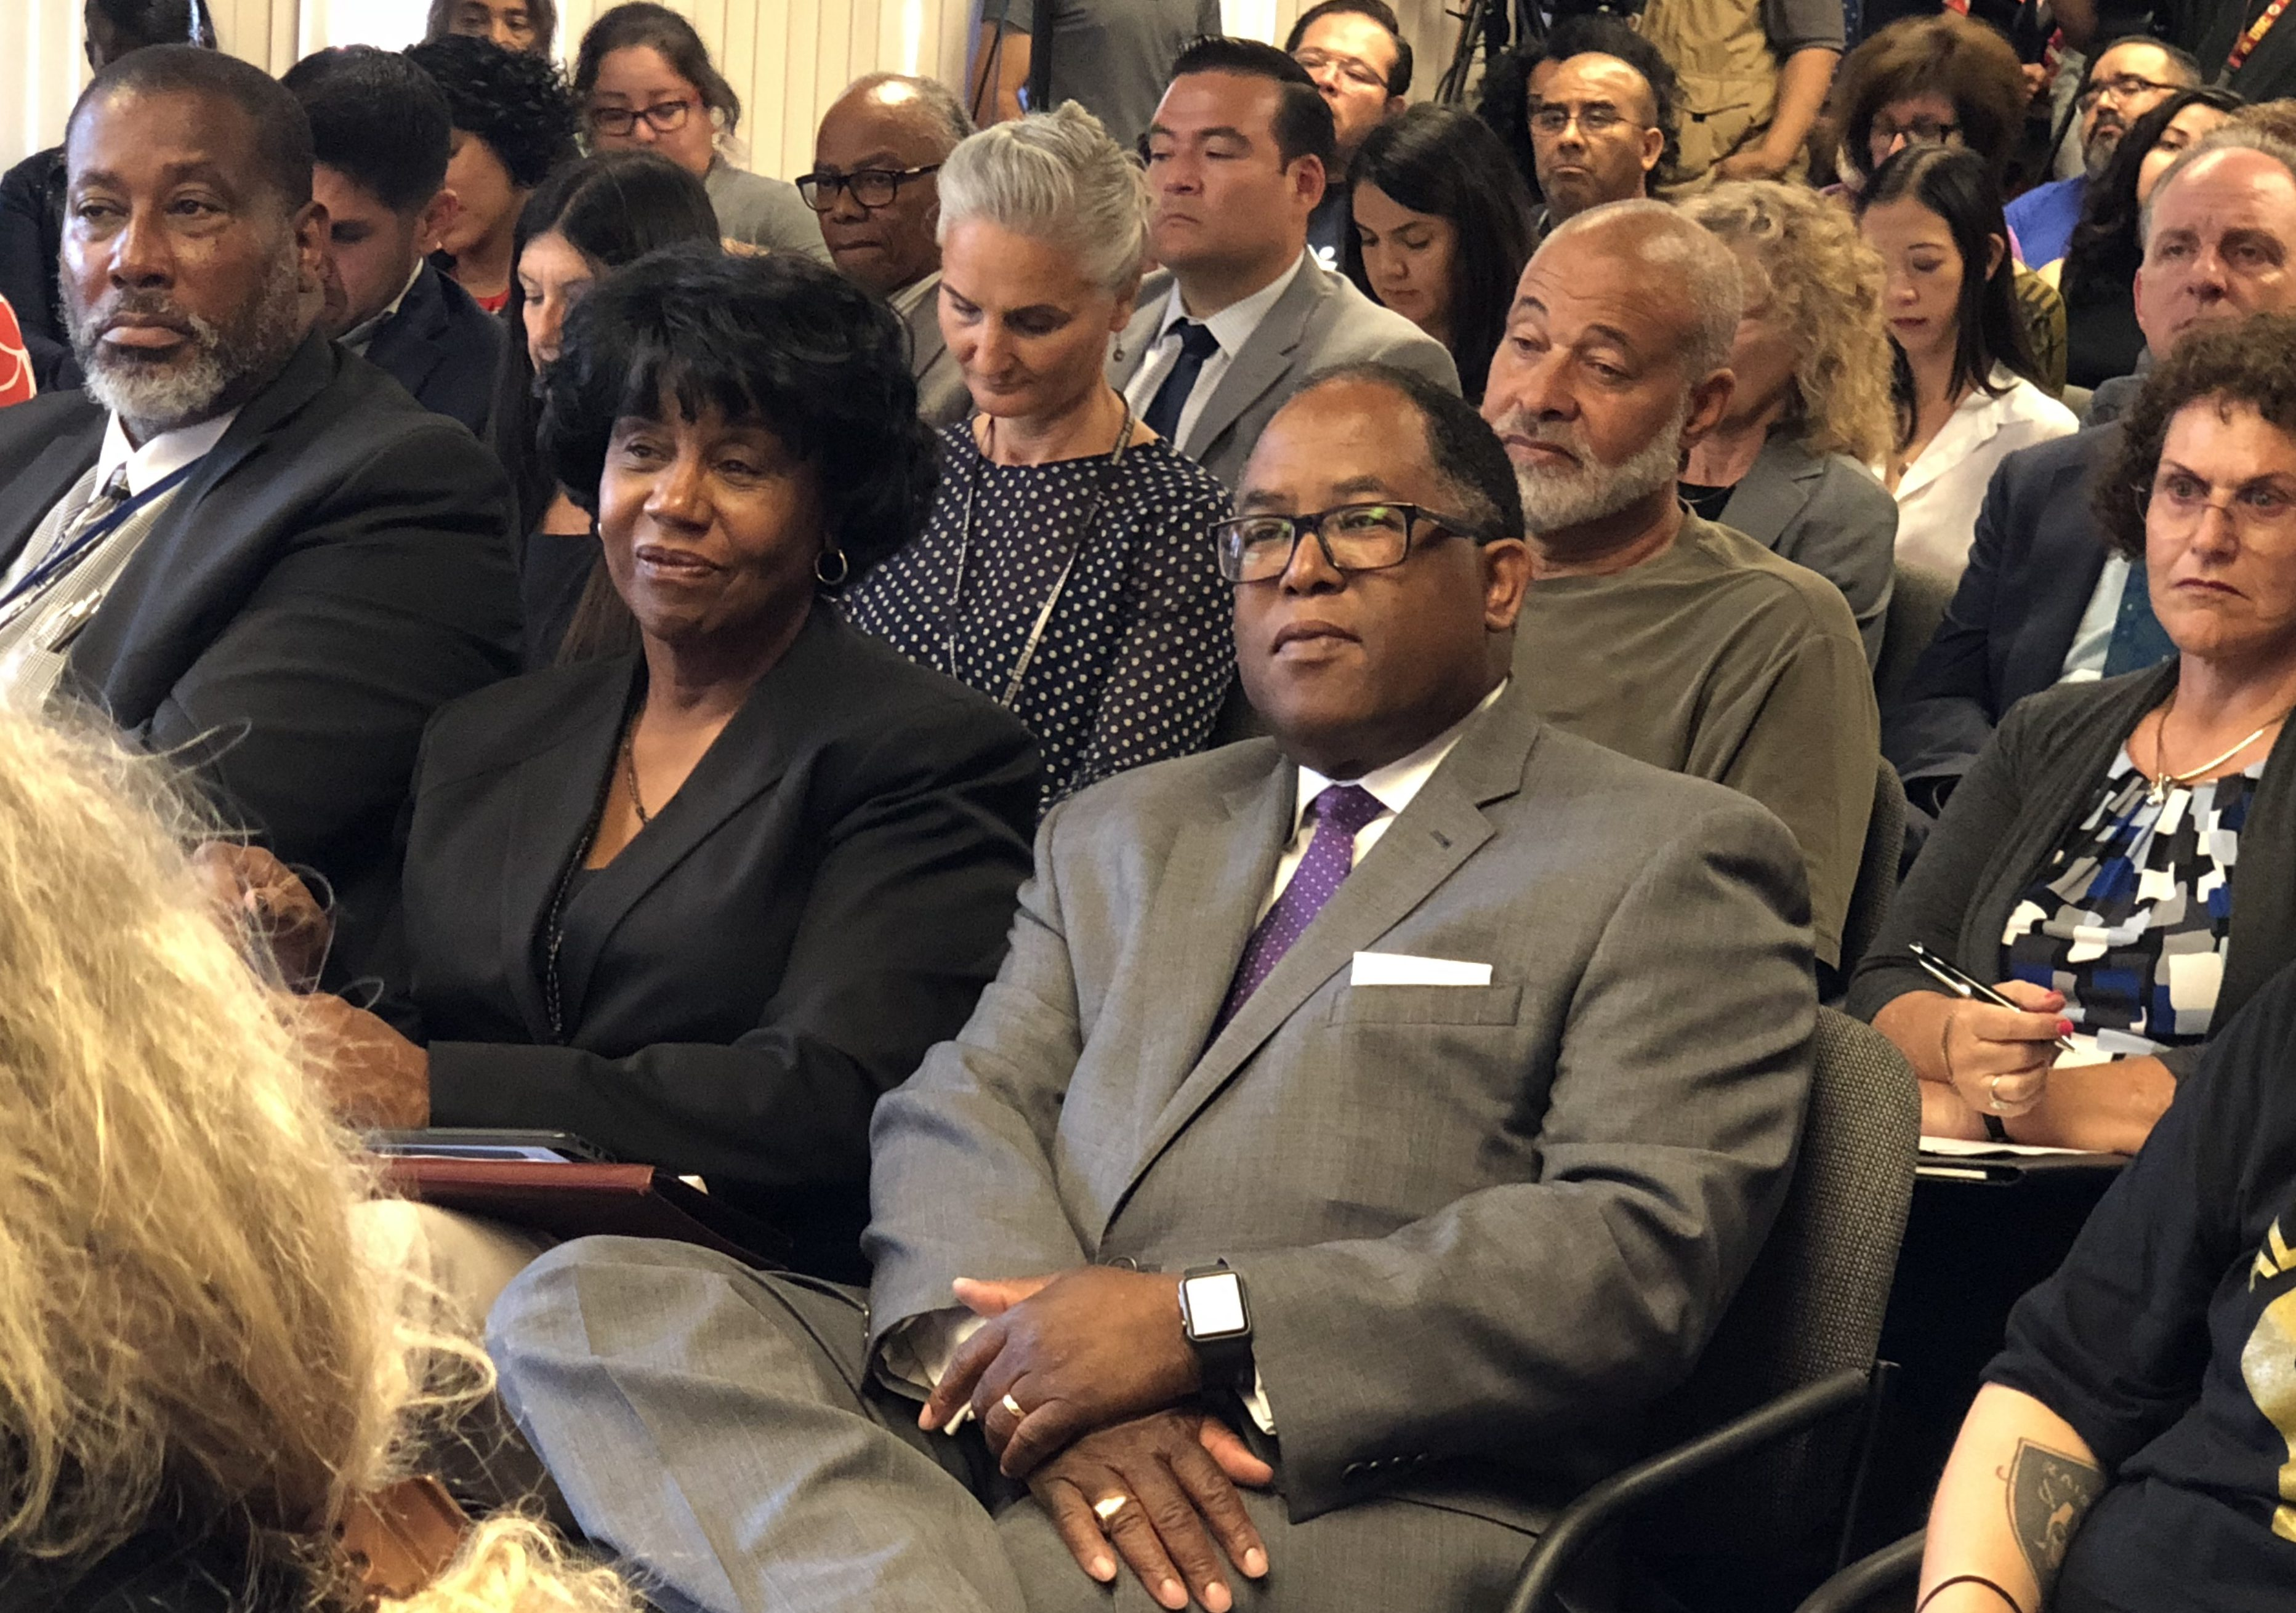 Work on Civilian Oversight Commission for LA County